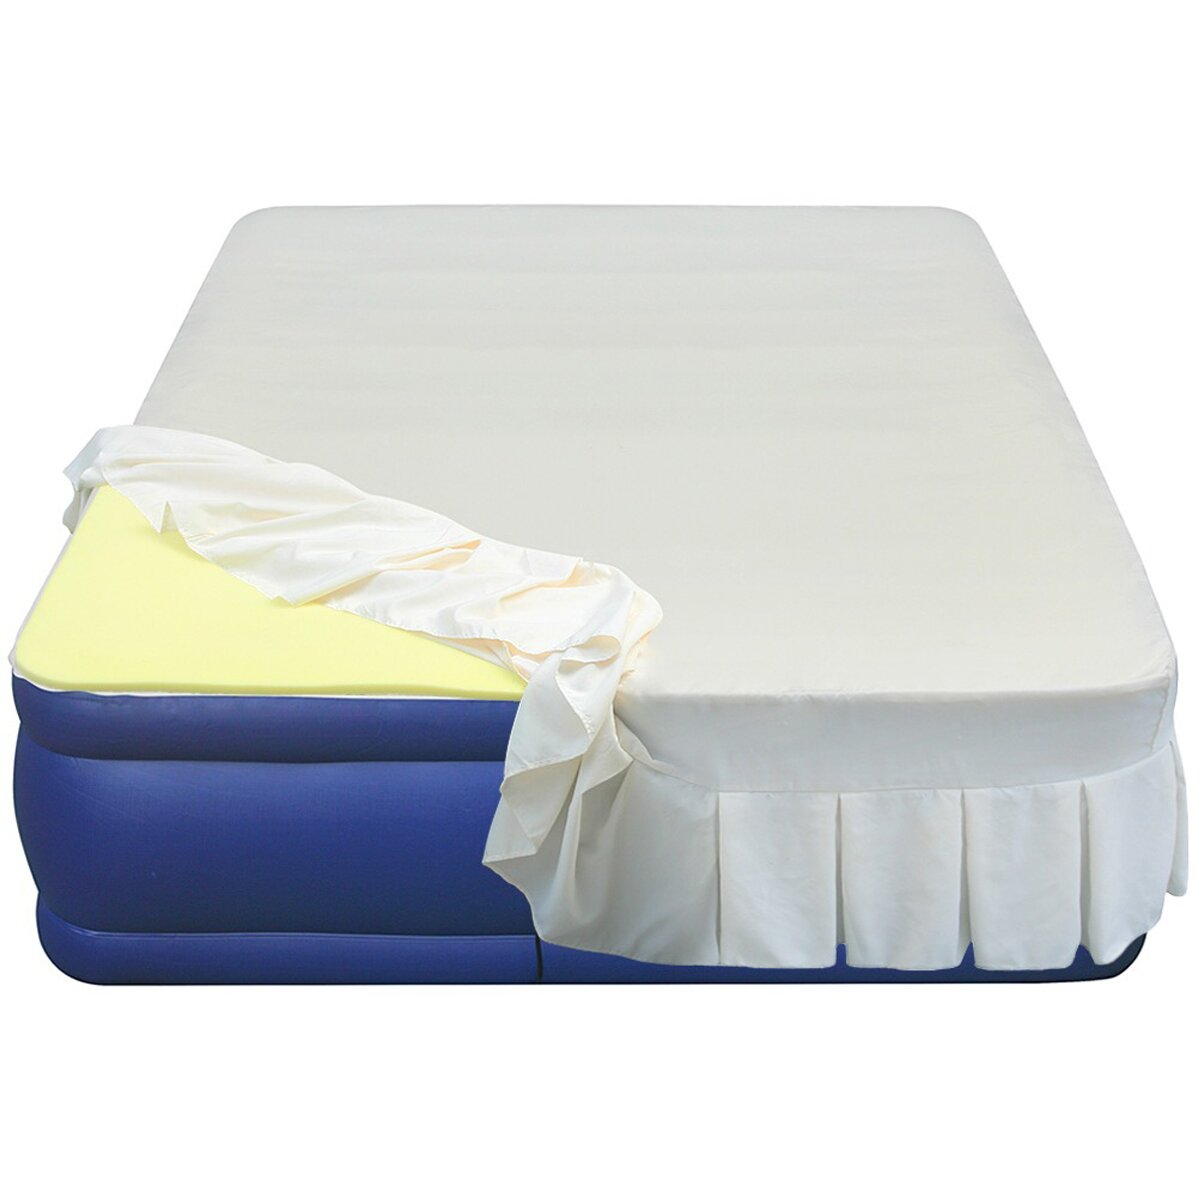 Essentials airbed high 1 density memory foam mattress topper wayfair Mattress sale memory foam